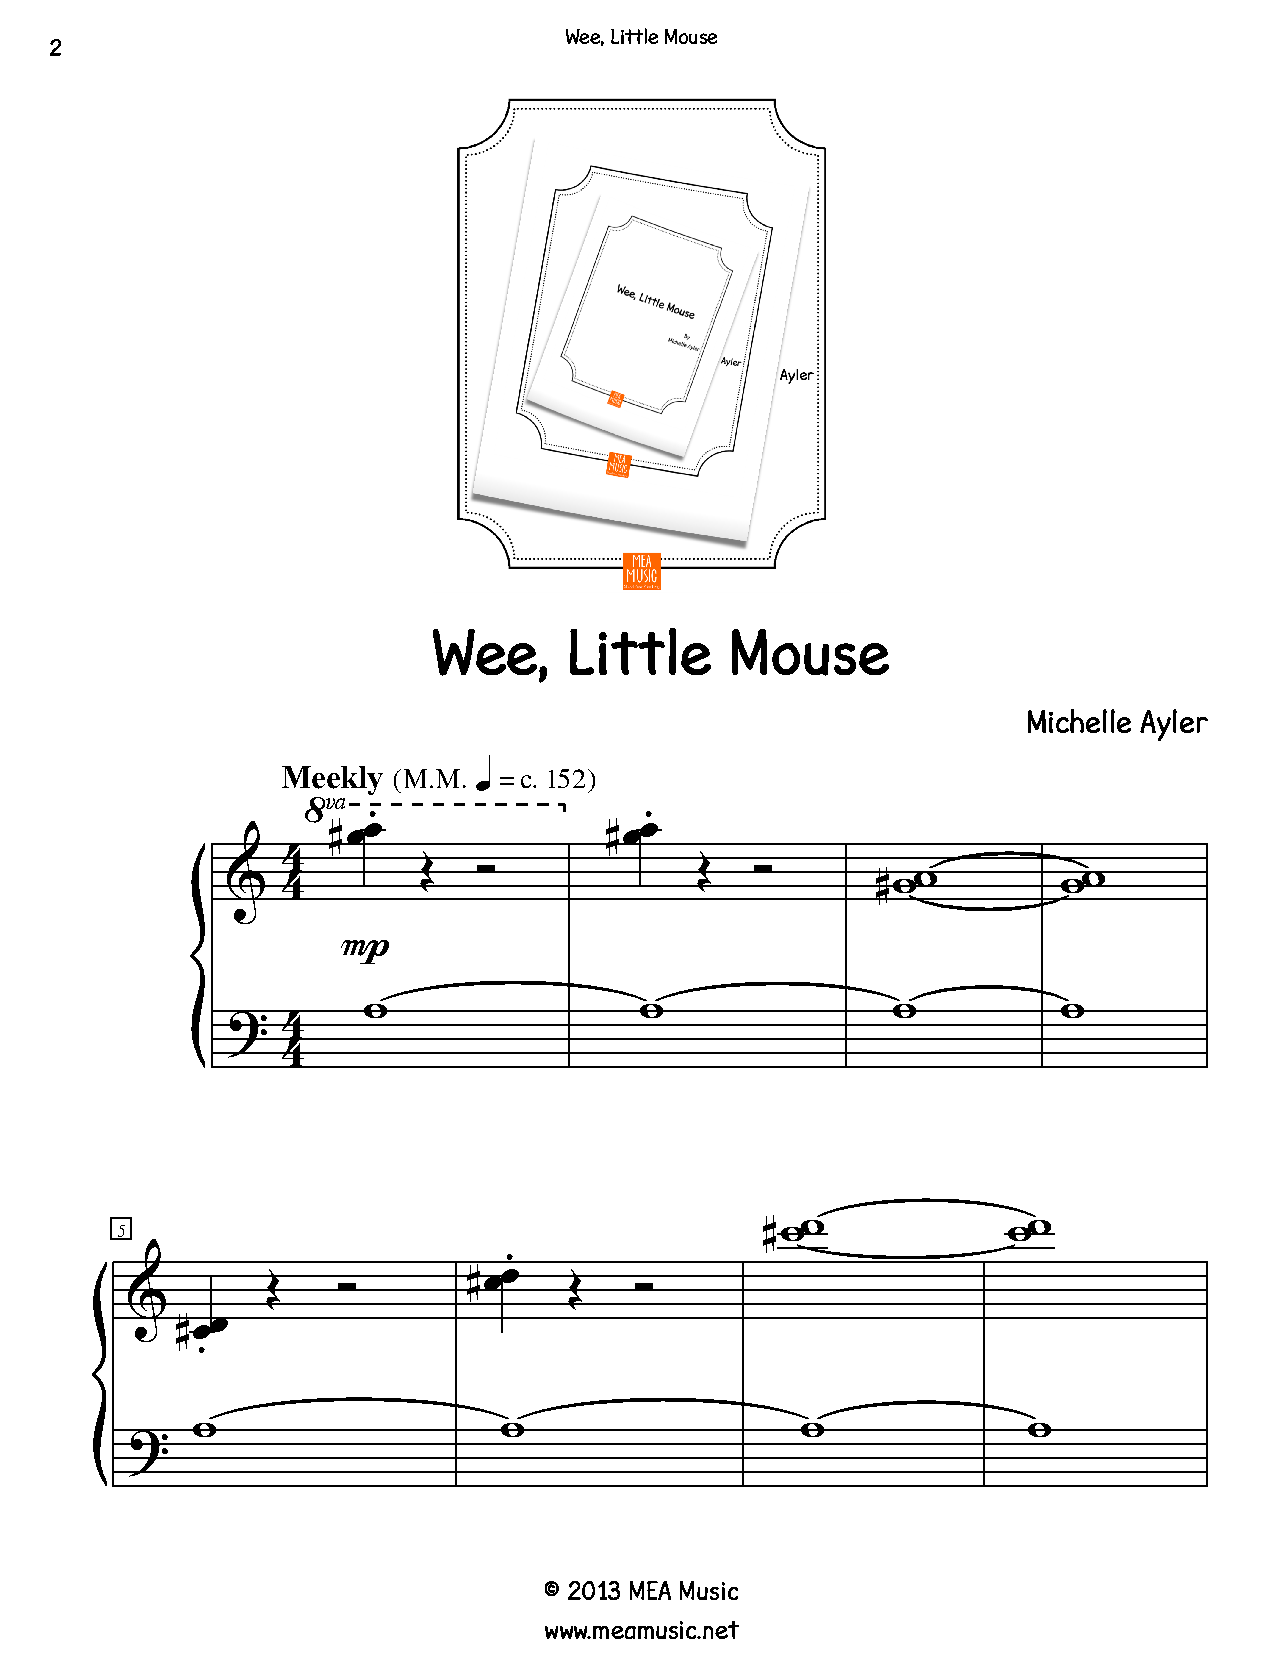 Wee, Little Mouse Piano Sheet Music Solo.  First page sample of a composition written for piano solo. This piece is for beginning piano students. Great for students that are open to playing pretty much anything. Use this sheet music for piano recitals, lessons, and more.  A level 3A piano music sheet in the key of D  . Get a printable download for only $1.99. Or order traditional sheet music for delivery. Only $3.99.